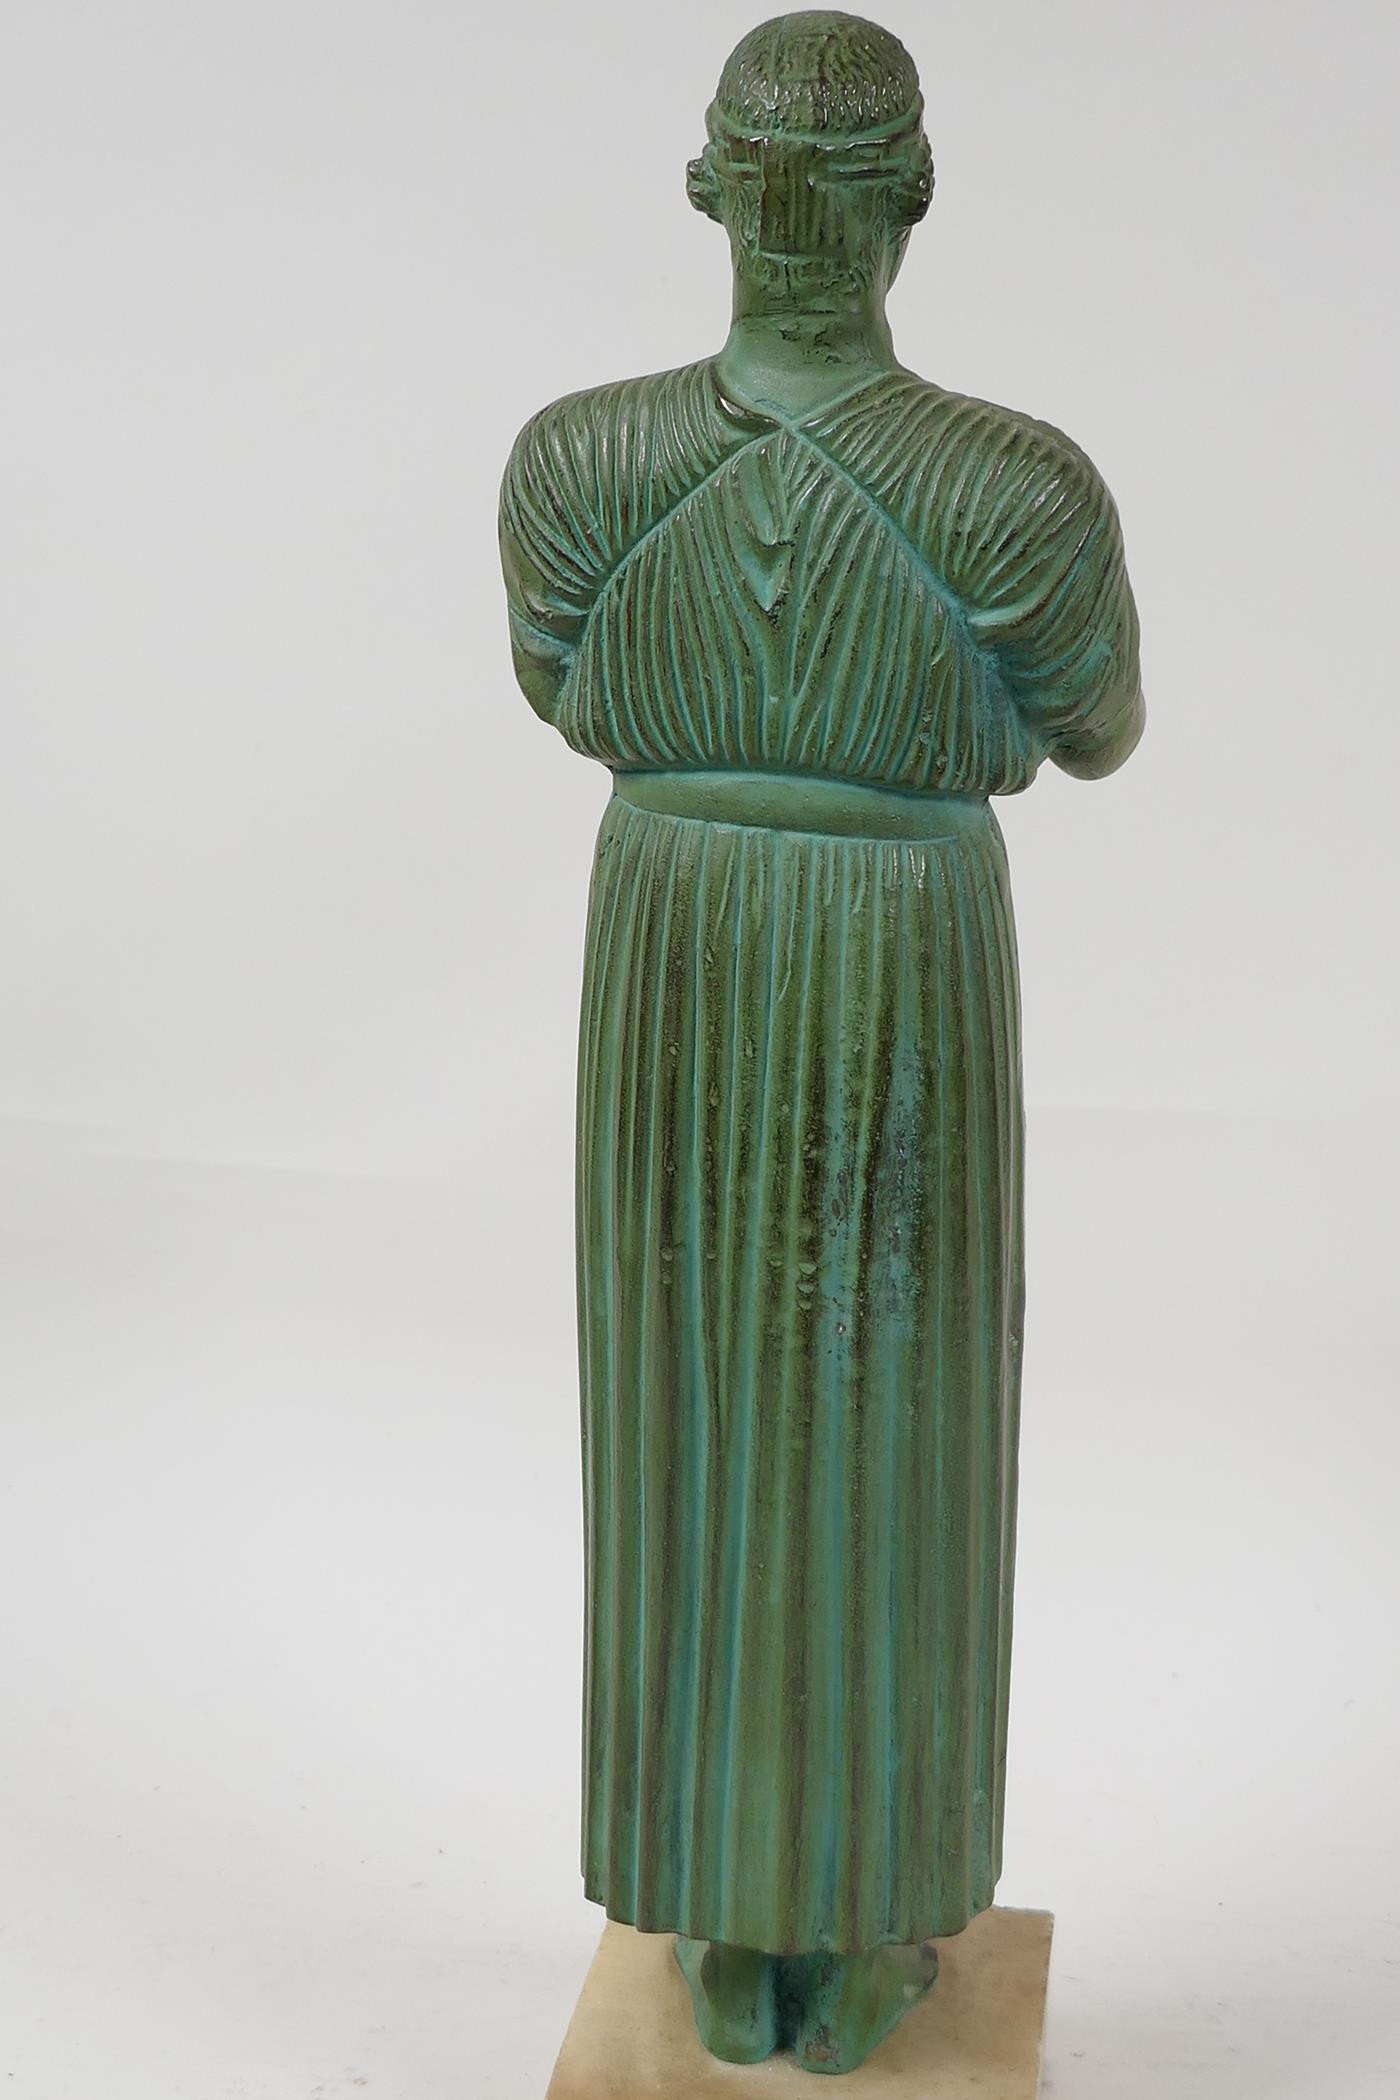 """A bronze figure of a Greek philospher, after the antique, 13½"""" high - Image 4 of 4"""